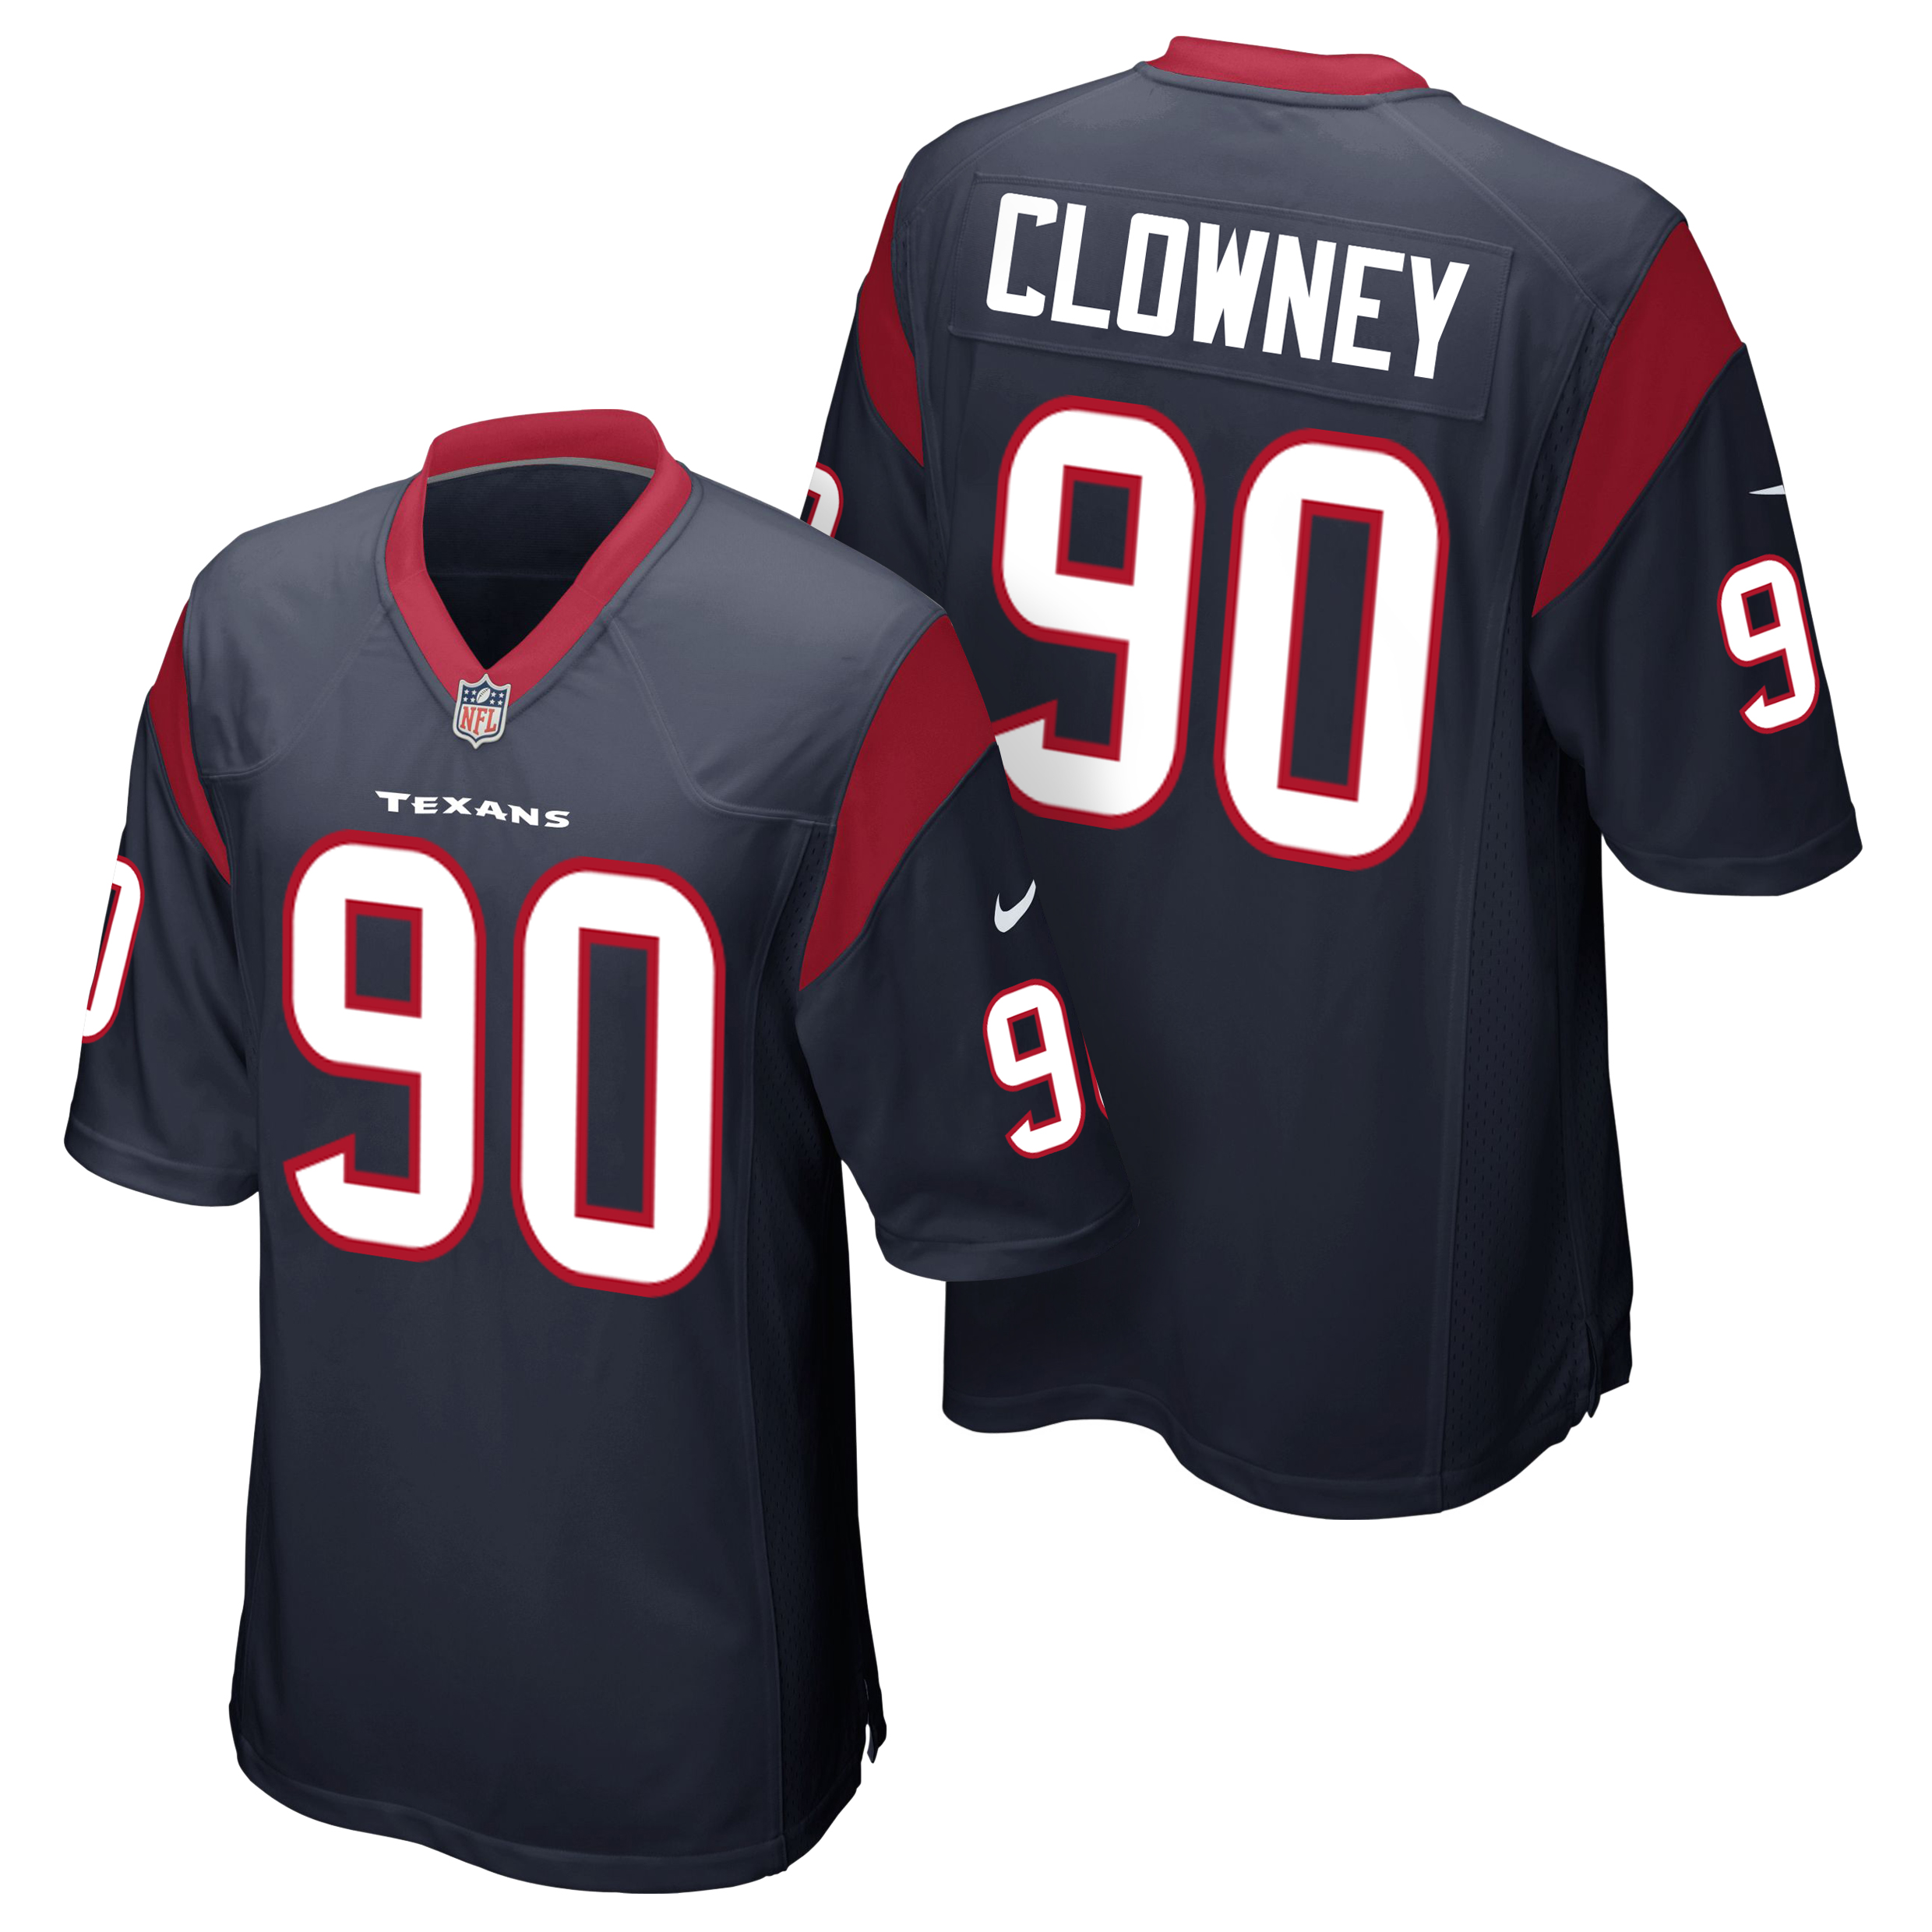 Houston Texans Home Game Jersey - Jadeveon Clowney